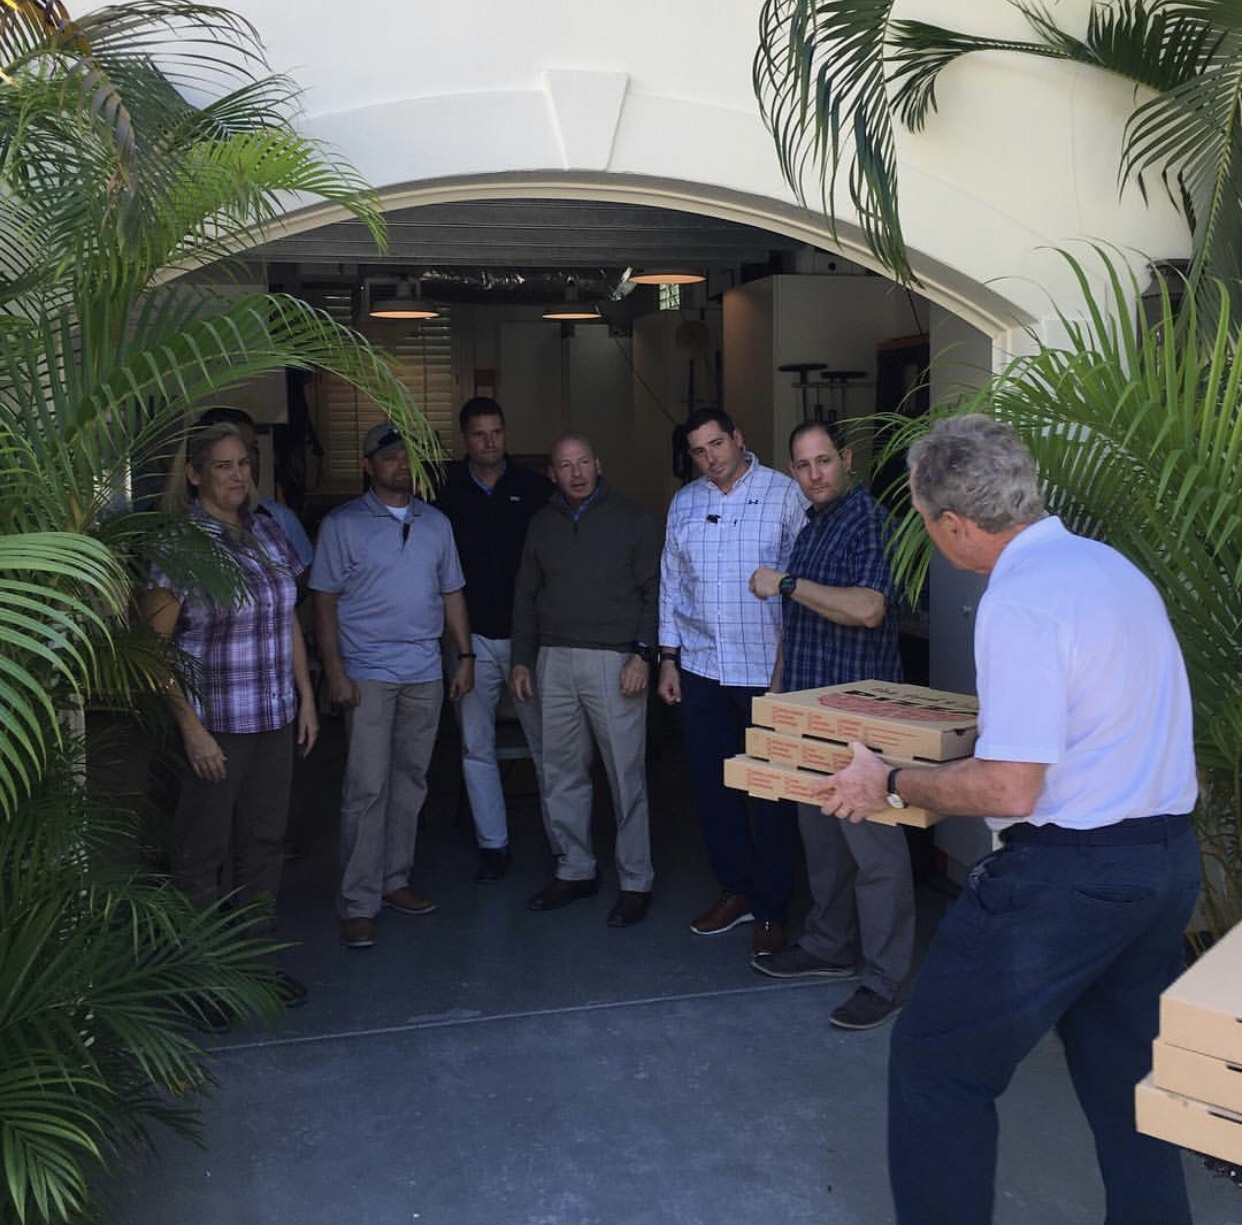 Former president George W. Bush hands pizza to his secret service personnel.